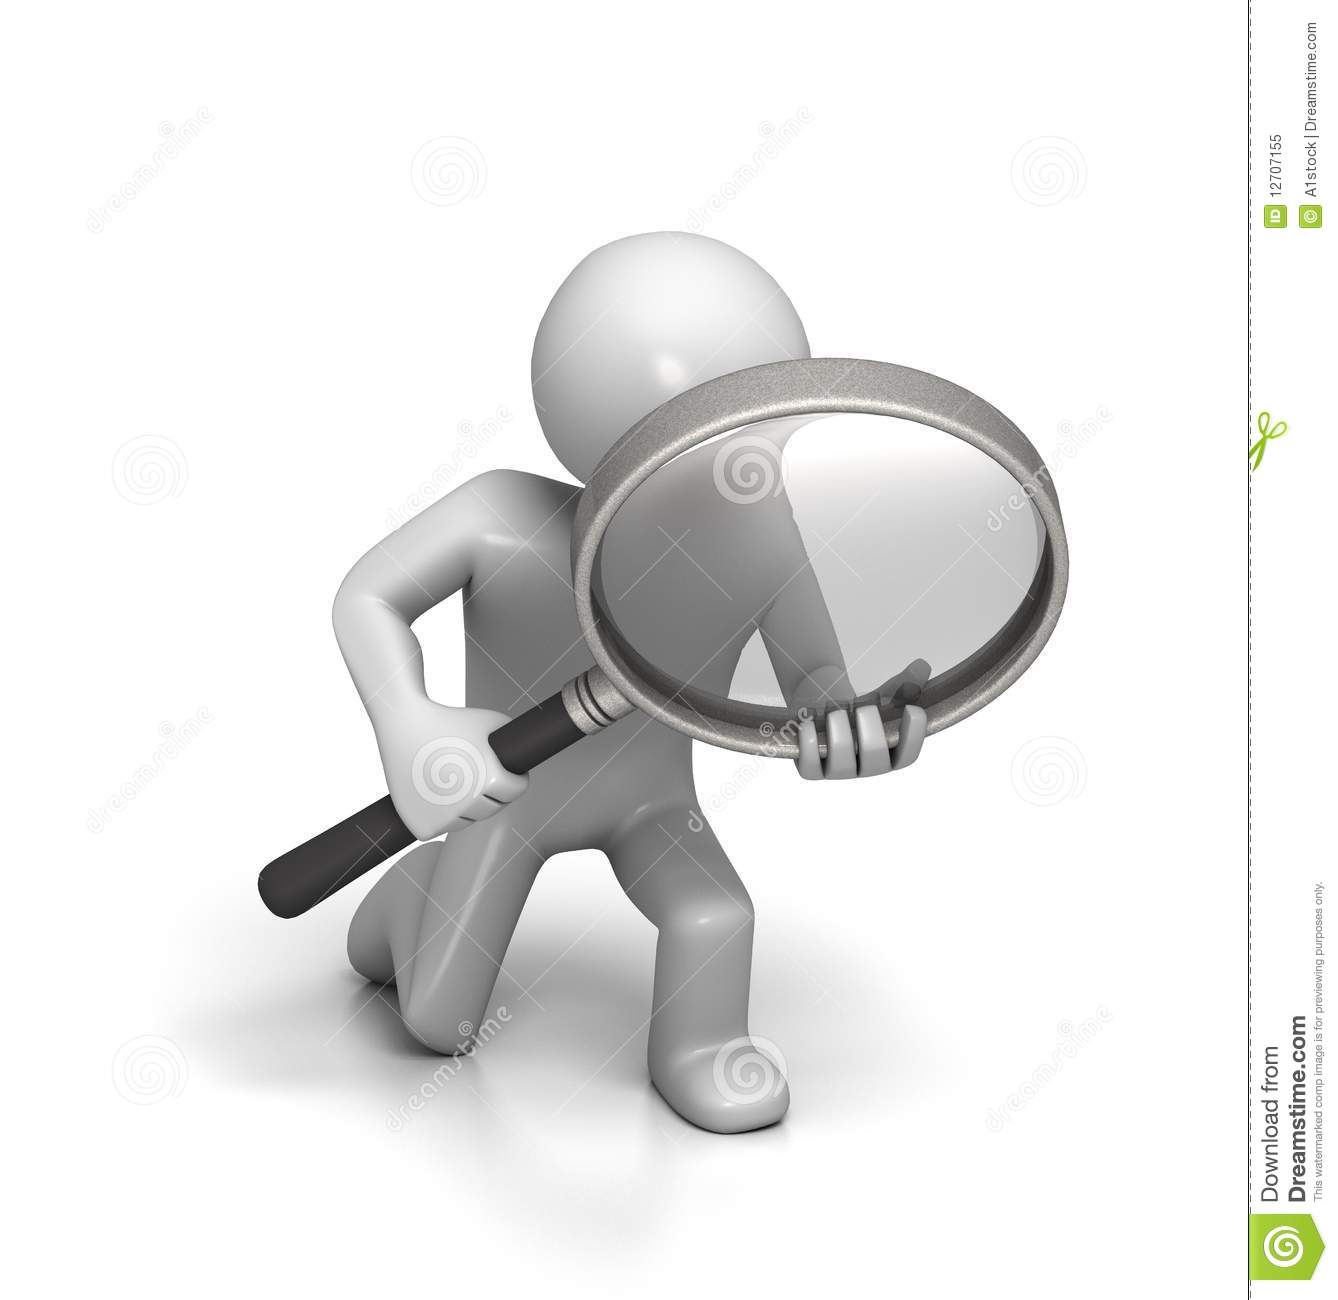 ... something with a large magnifying glass. Isolated on white background